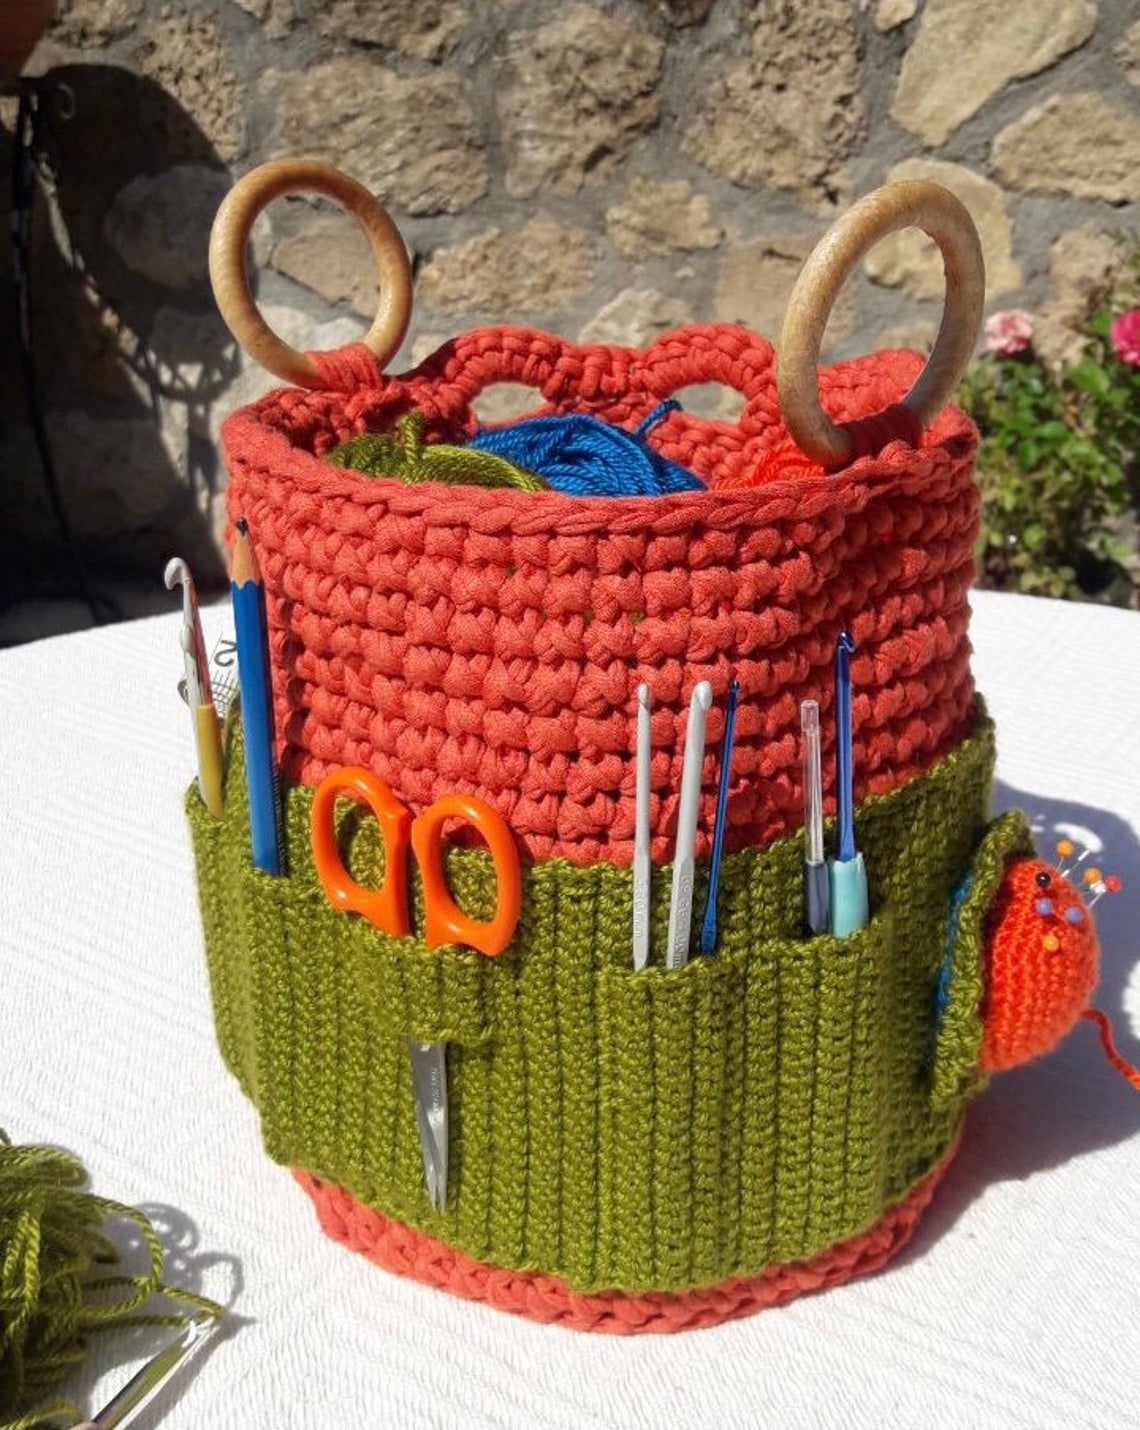 Organize Your Crochet Hooks With This Cute Crochet Caddy ... Get The Pattern!